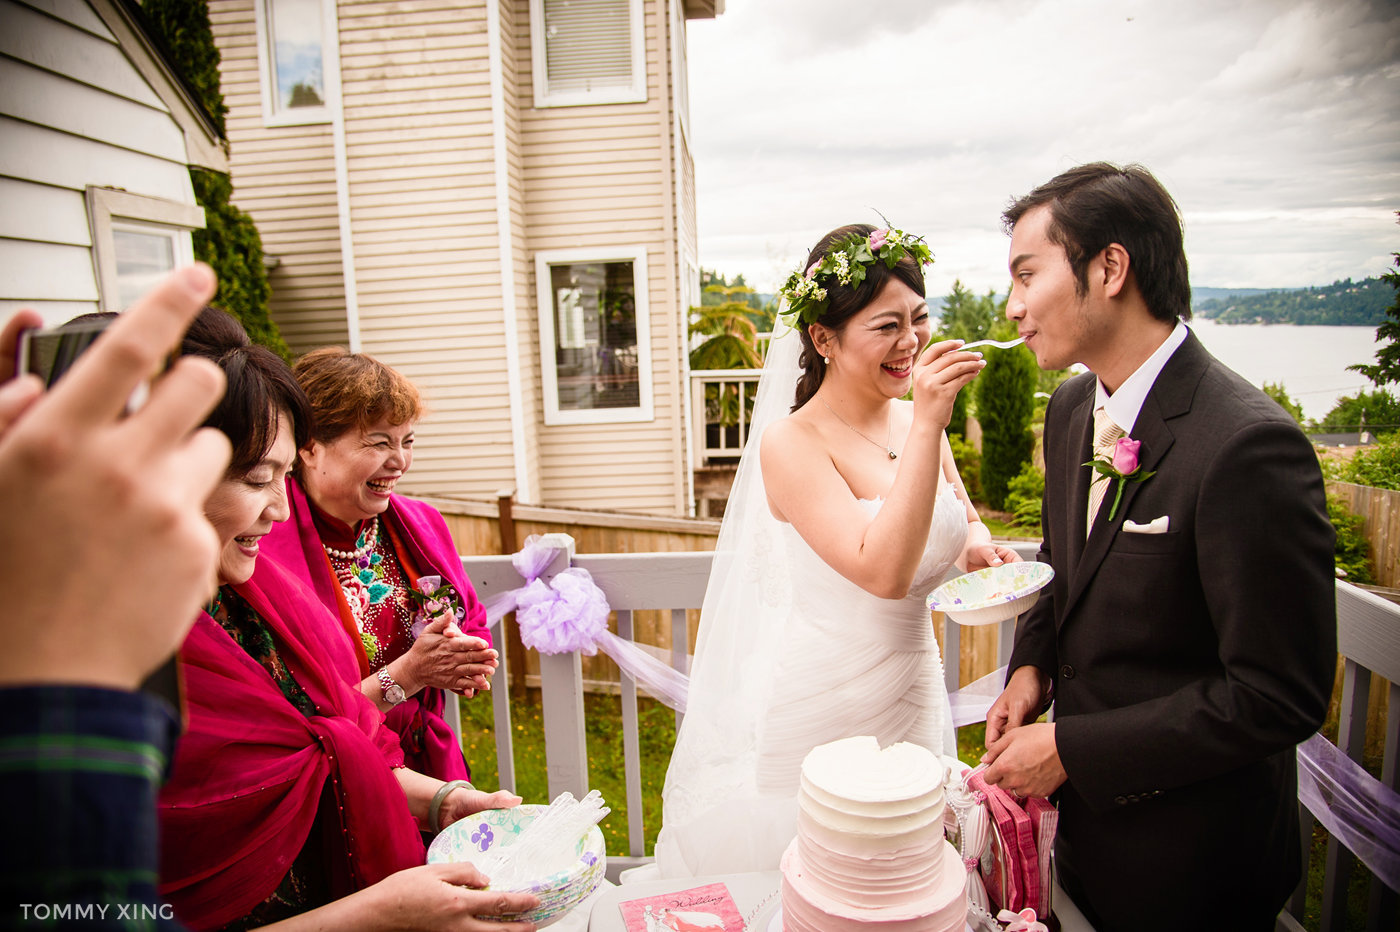 Seattle Wedding and pre wedding Los Angeles Tommy Xing Photography 西雅图洛杉矶旧金山婚礼婚纱照摄影师 146.jpg